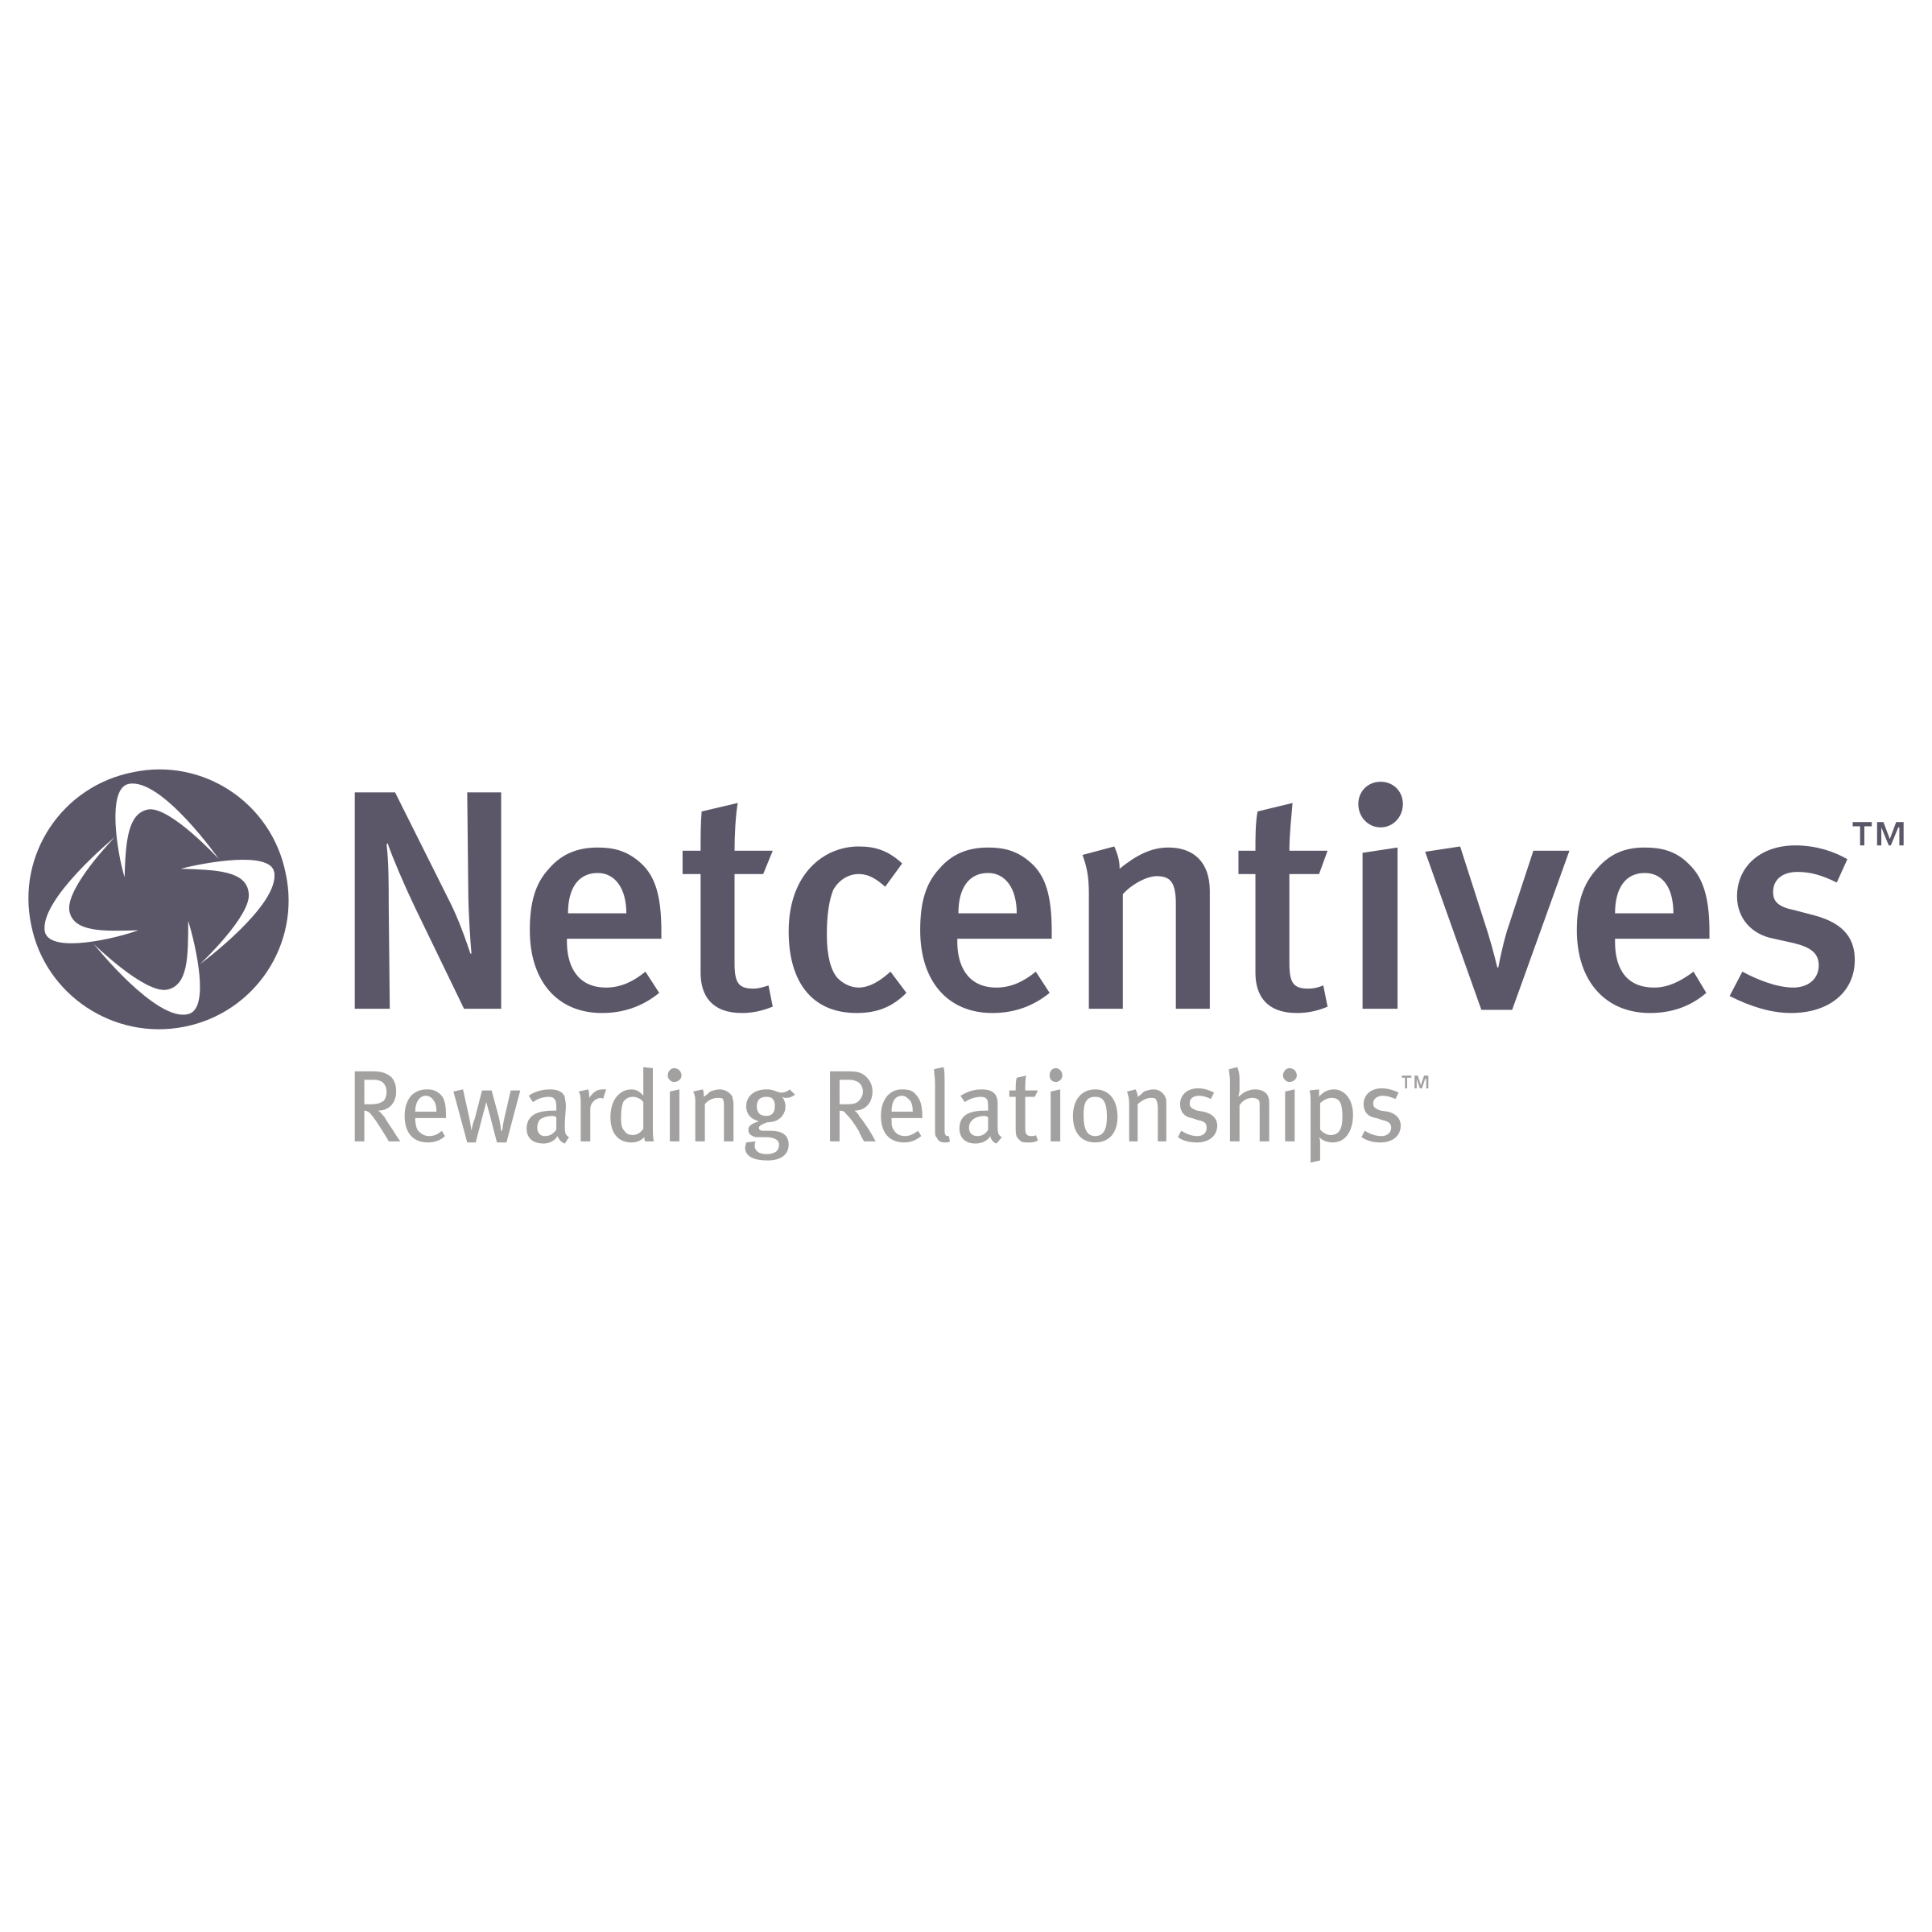 Netcentives